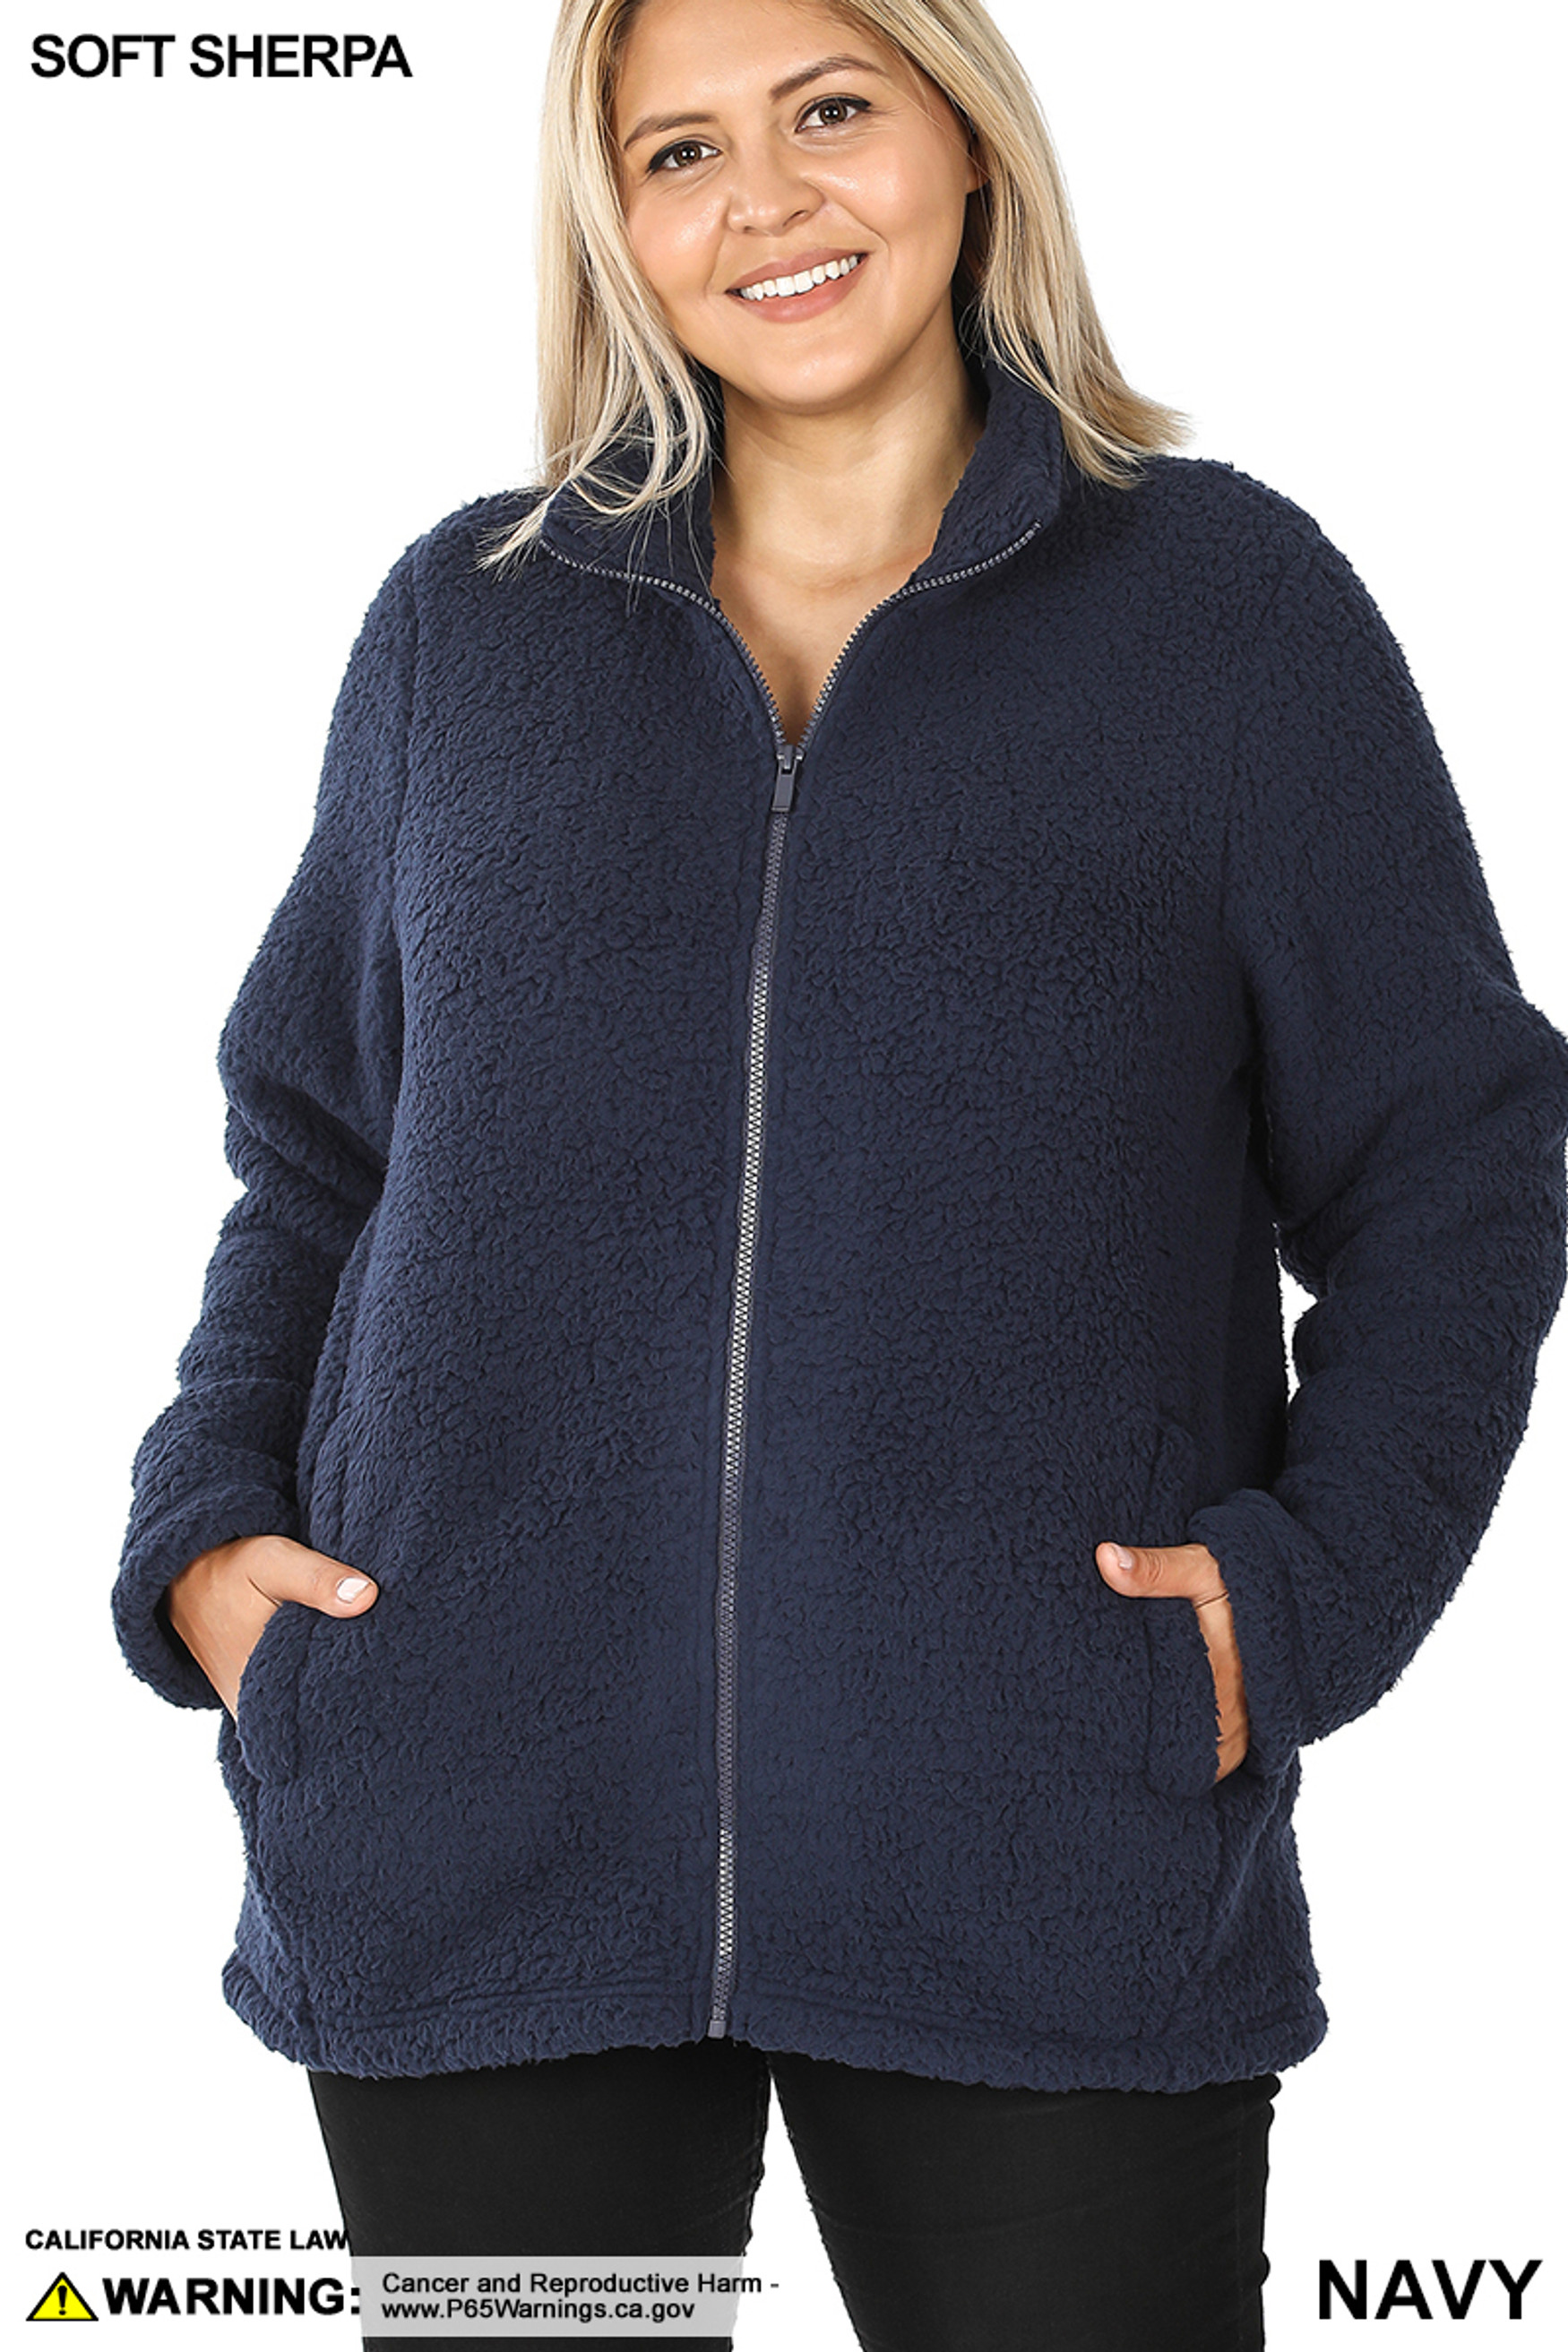 Front image of Navy Sherpa Zip Up Plus Size Jacket with Side Pockets